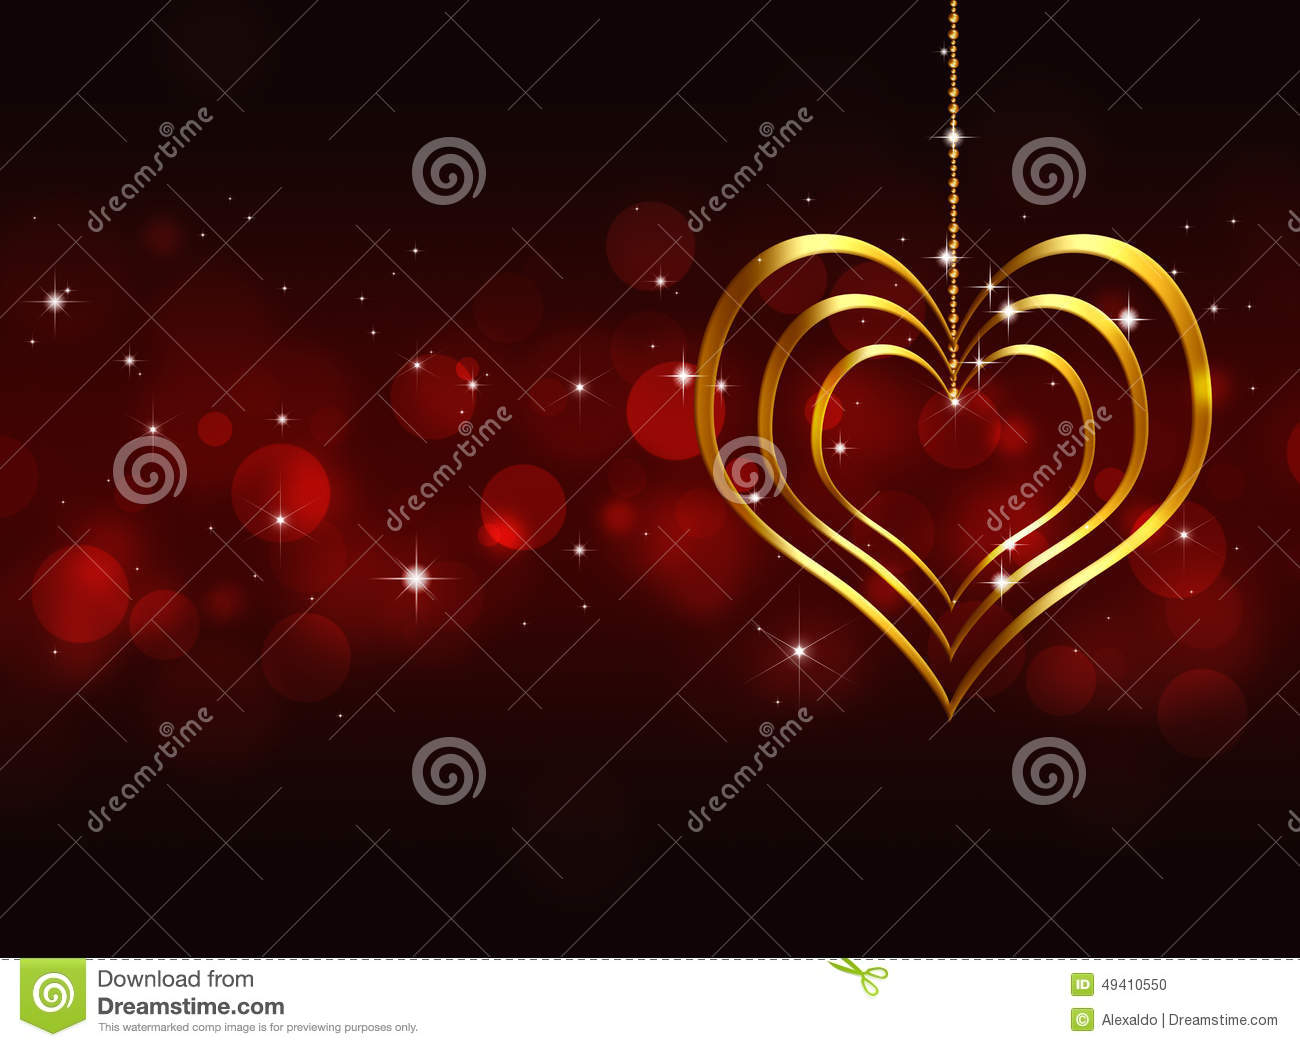 Download Goldenes Herz Valentine Red Background Stock Abbildung - Illustration von abbildung, februar: 49410550